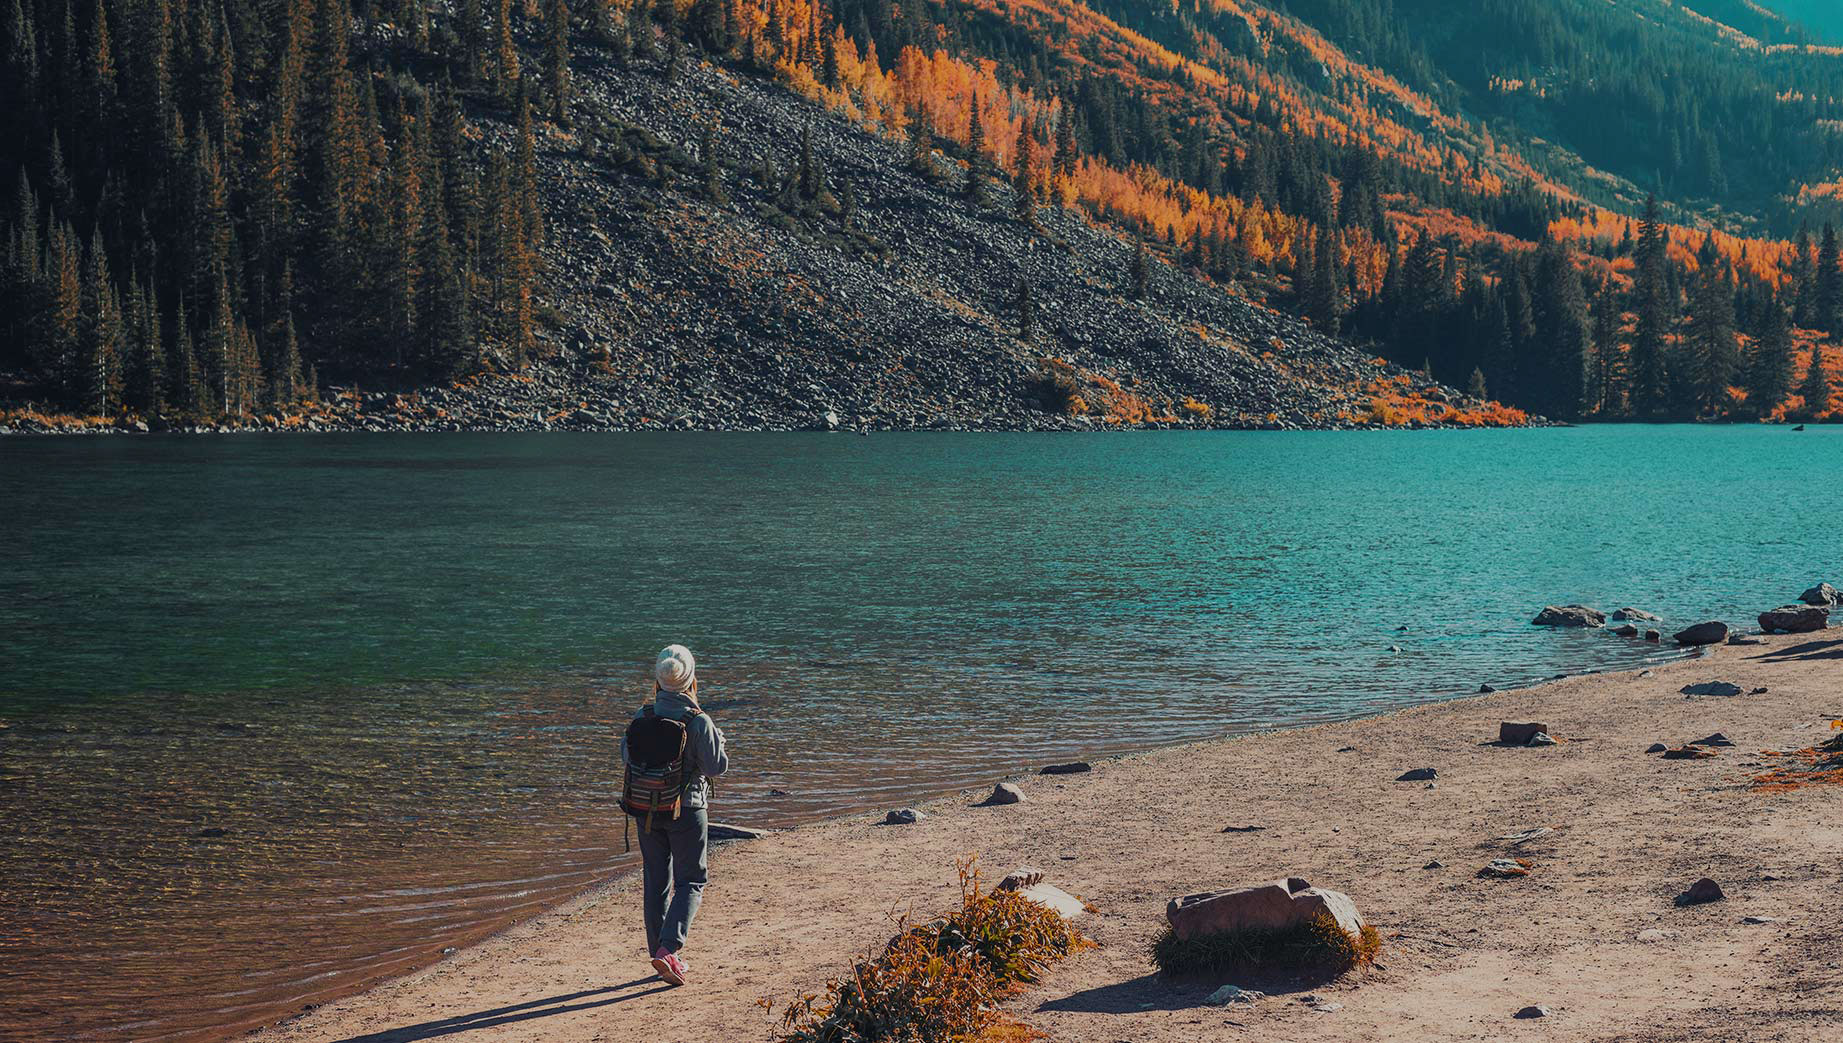 woman in nature on a personal journey